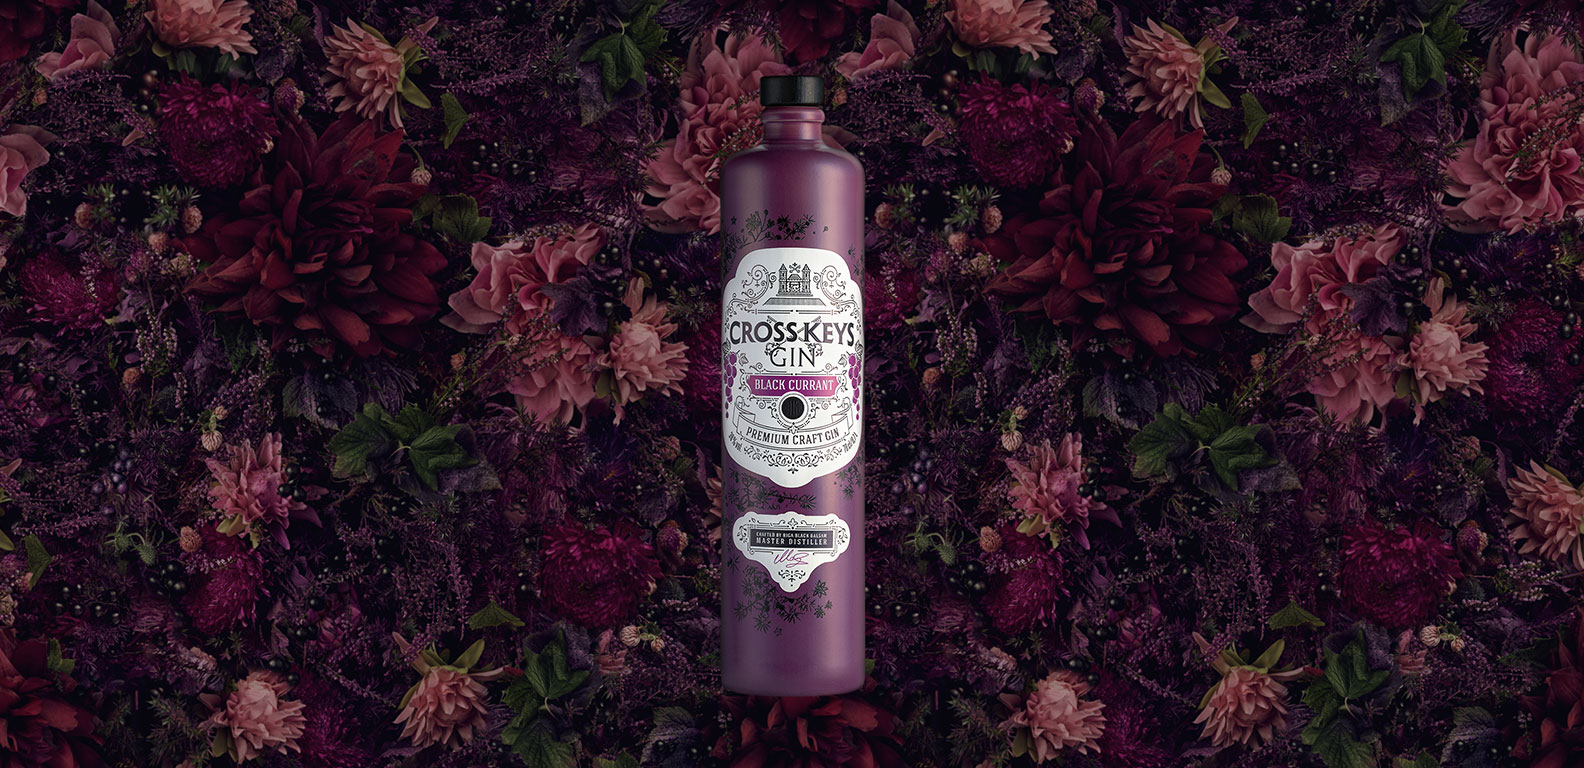 CrossKeys Black Currant - packaging design and web